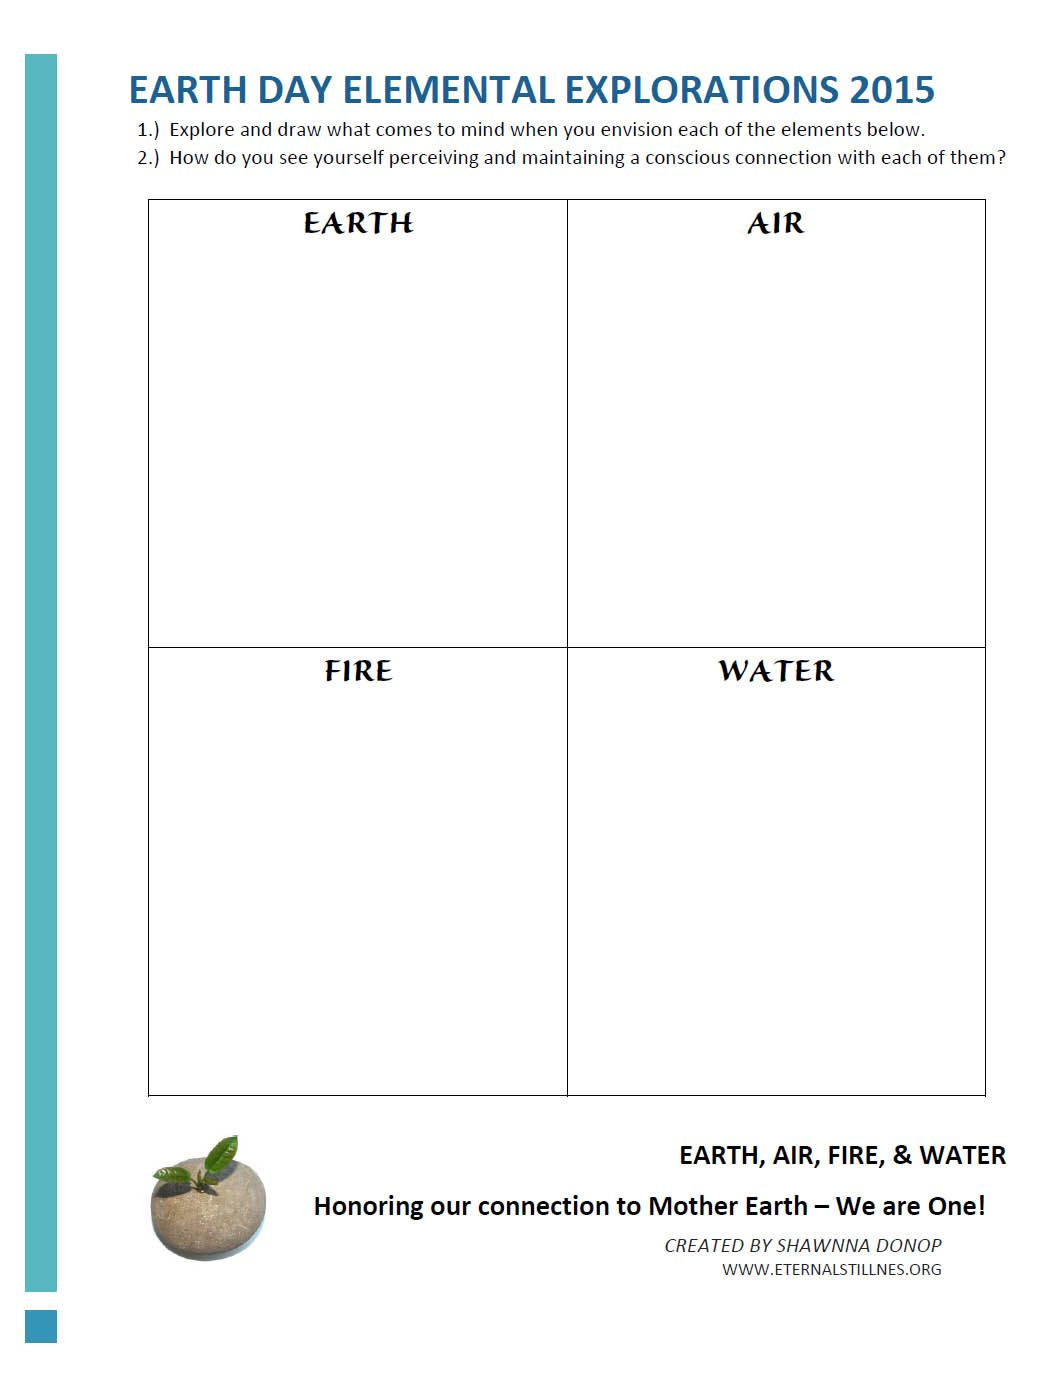 Earth Day Elemental Explorations Worksheet